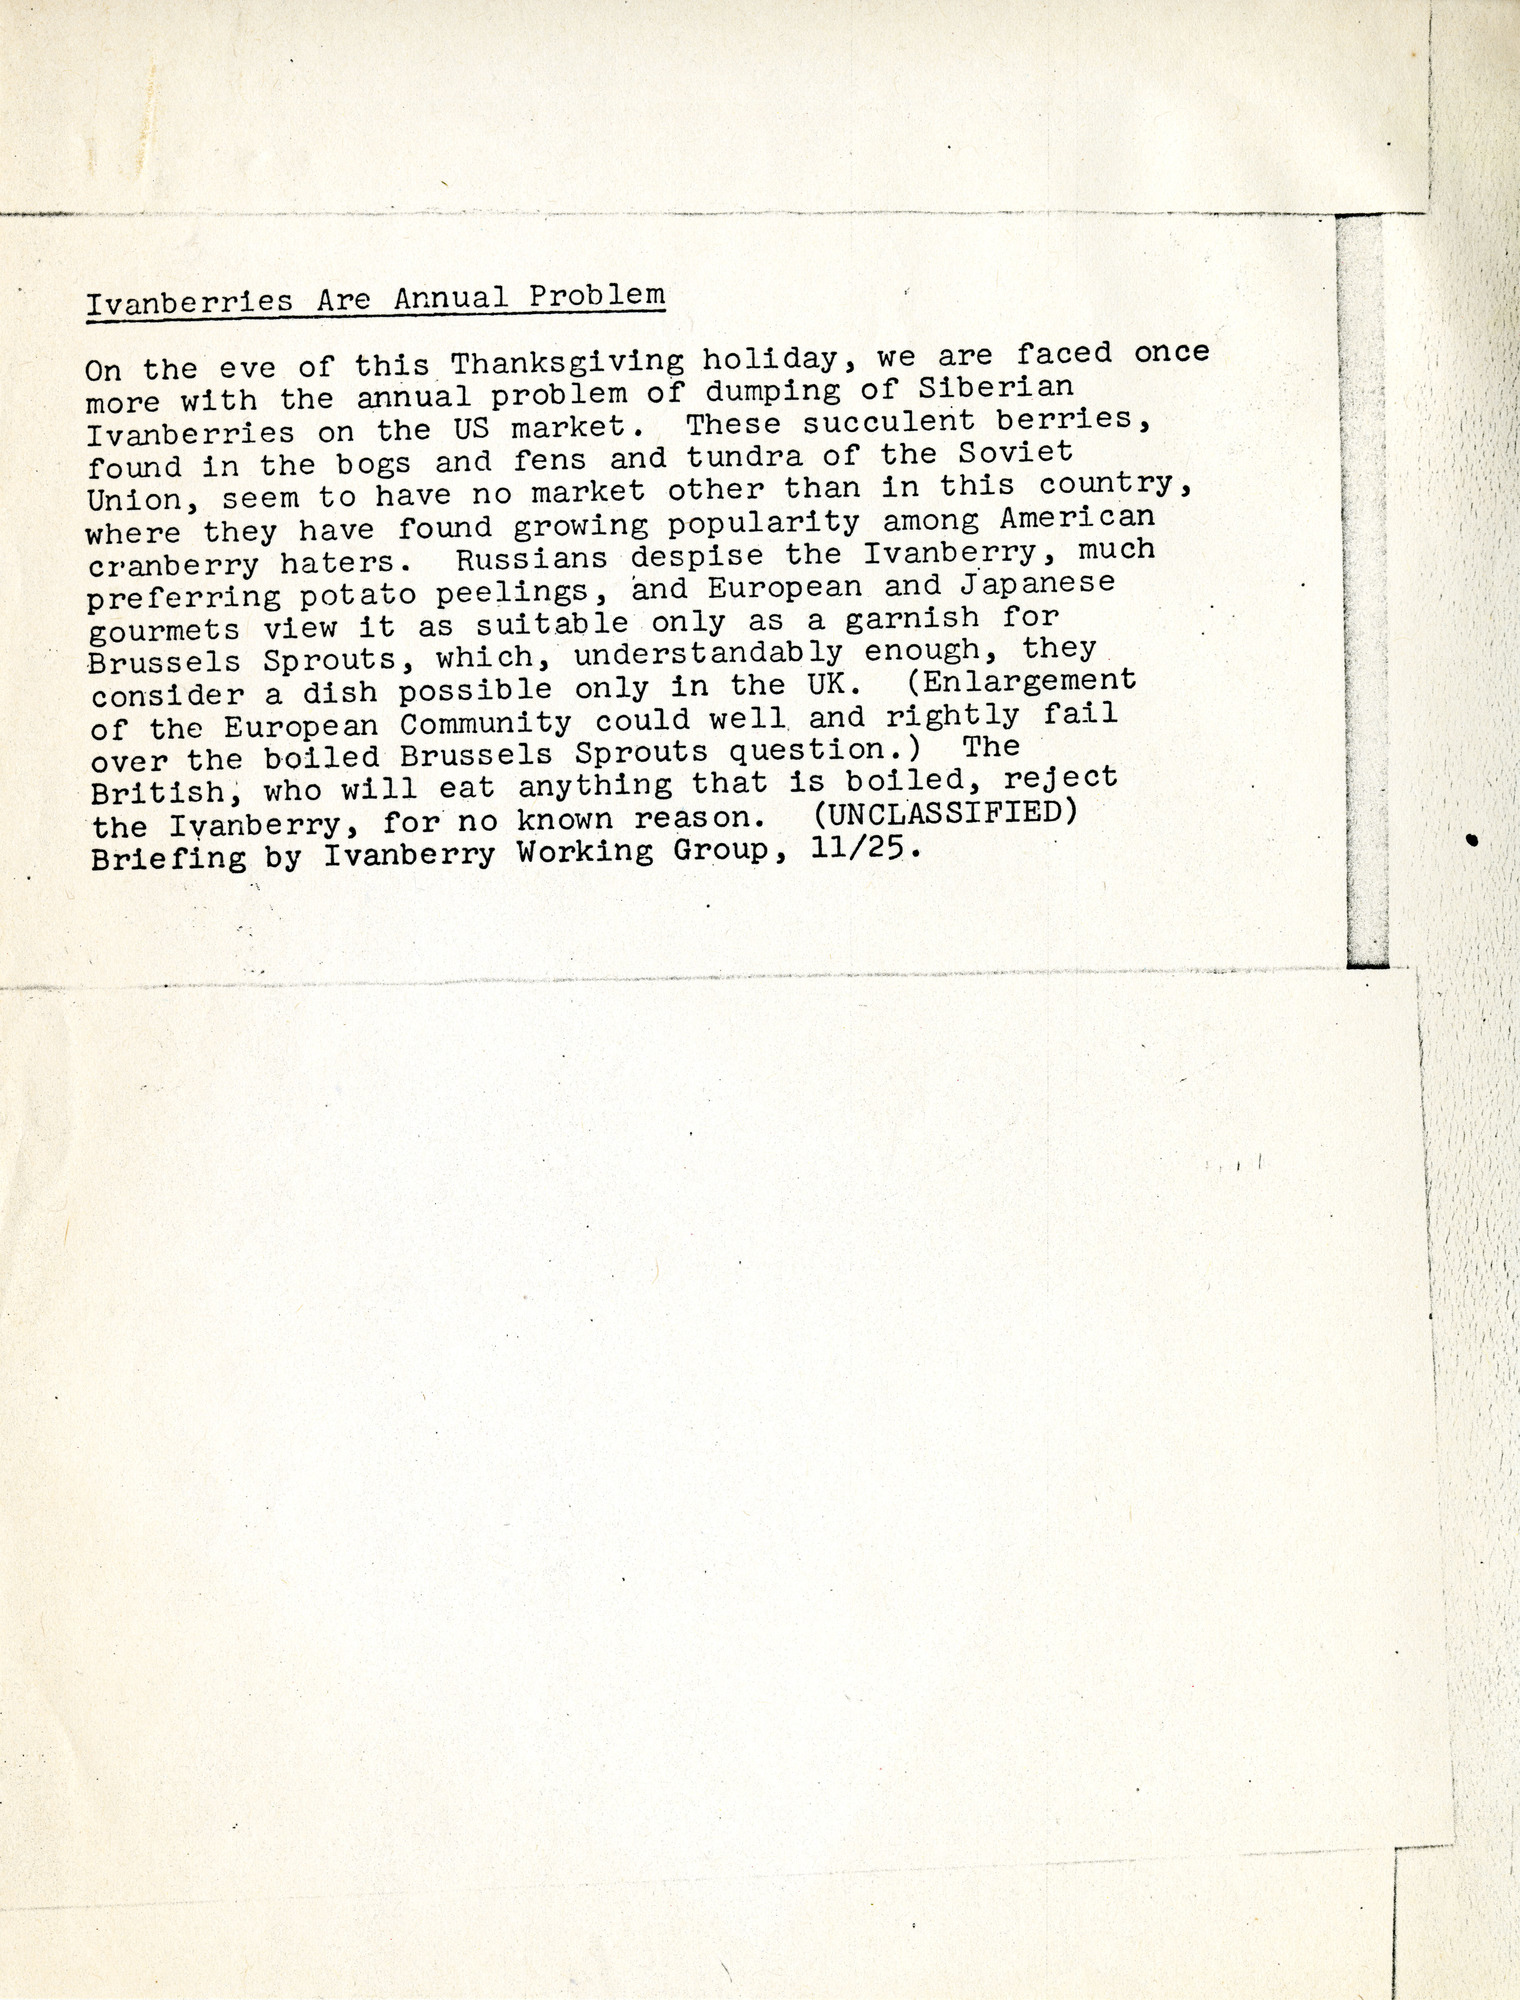 http://spec.lib.vt.edu/pickup/Omeka_upload/Ms1989-029_B18_F1_MichaelCollins_Report_1970_1125.jpg